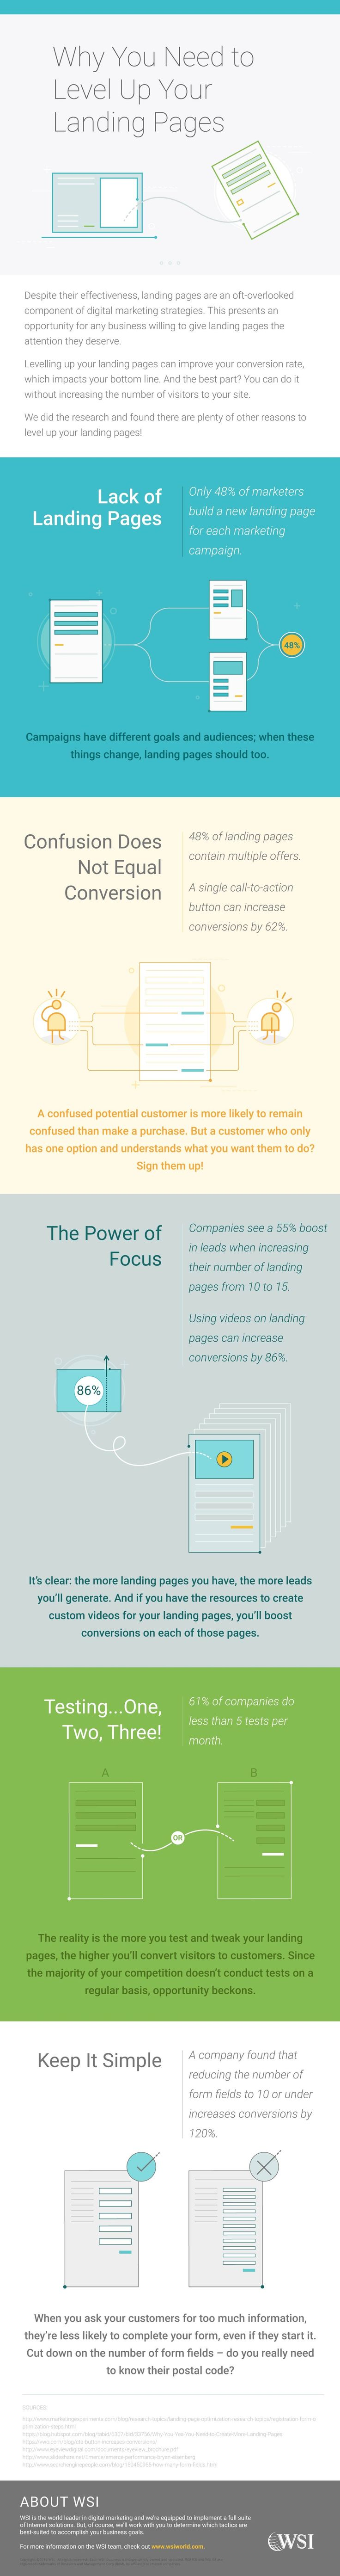 This infographic outlines some of the key benefits - and best practices - of effective landing pages.